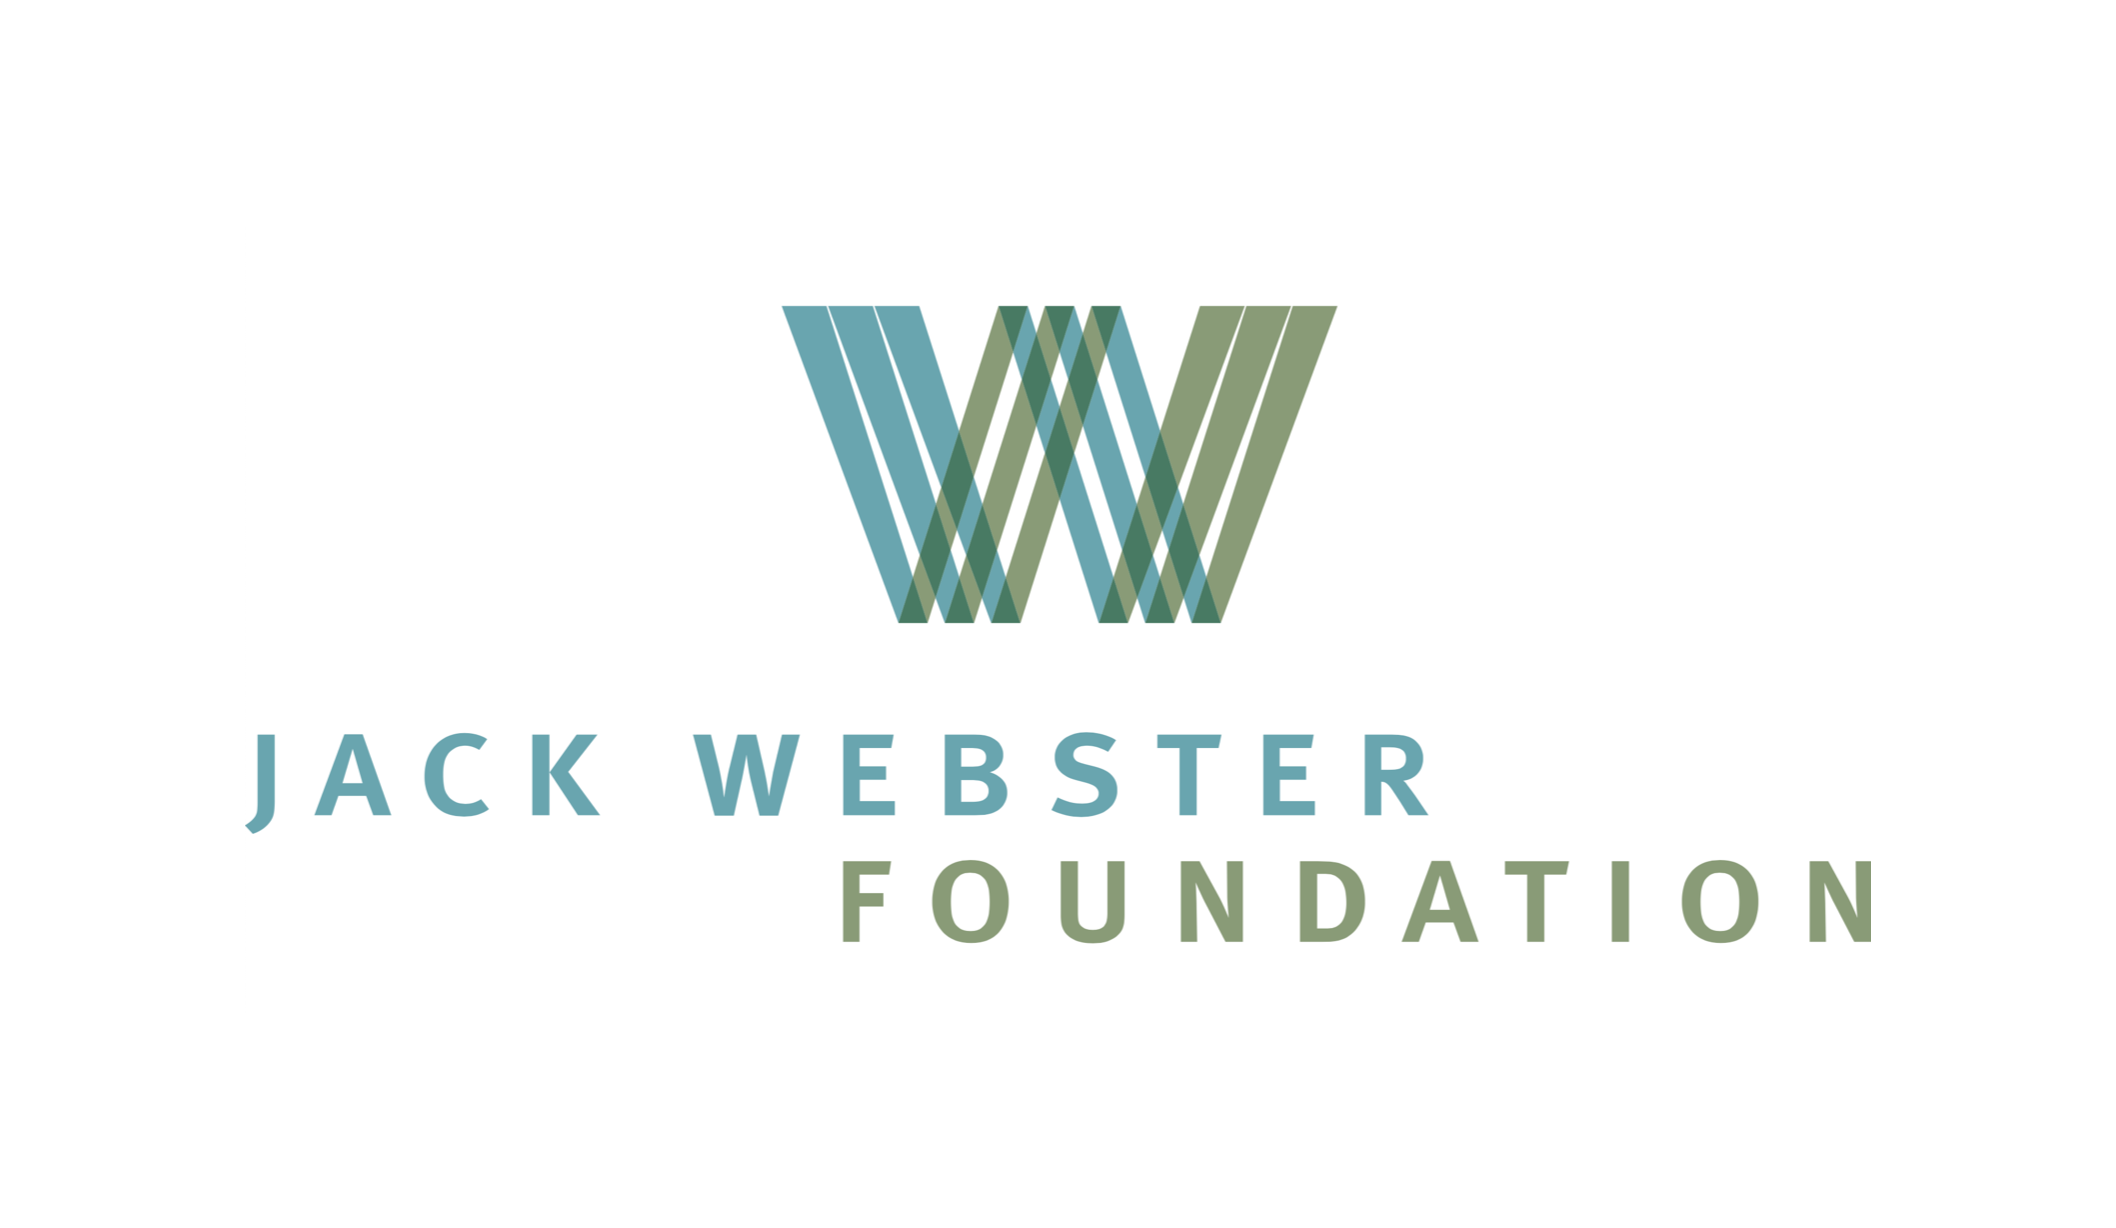 Jack Webster Foundation logo